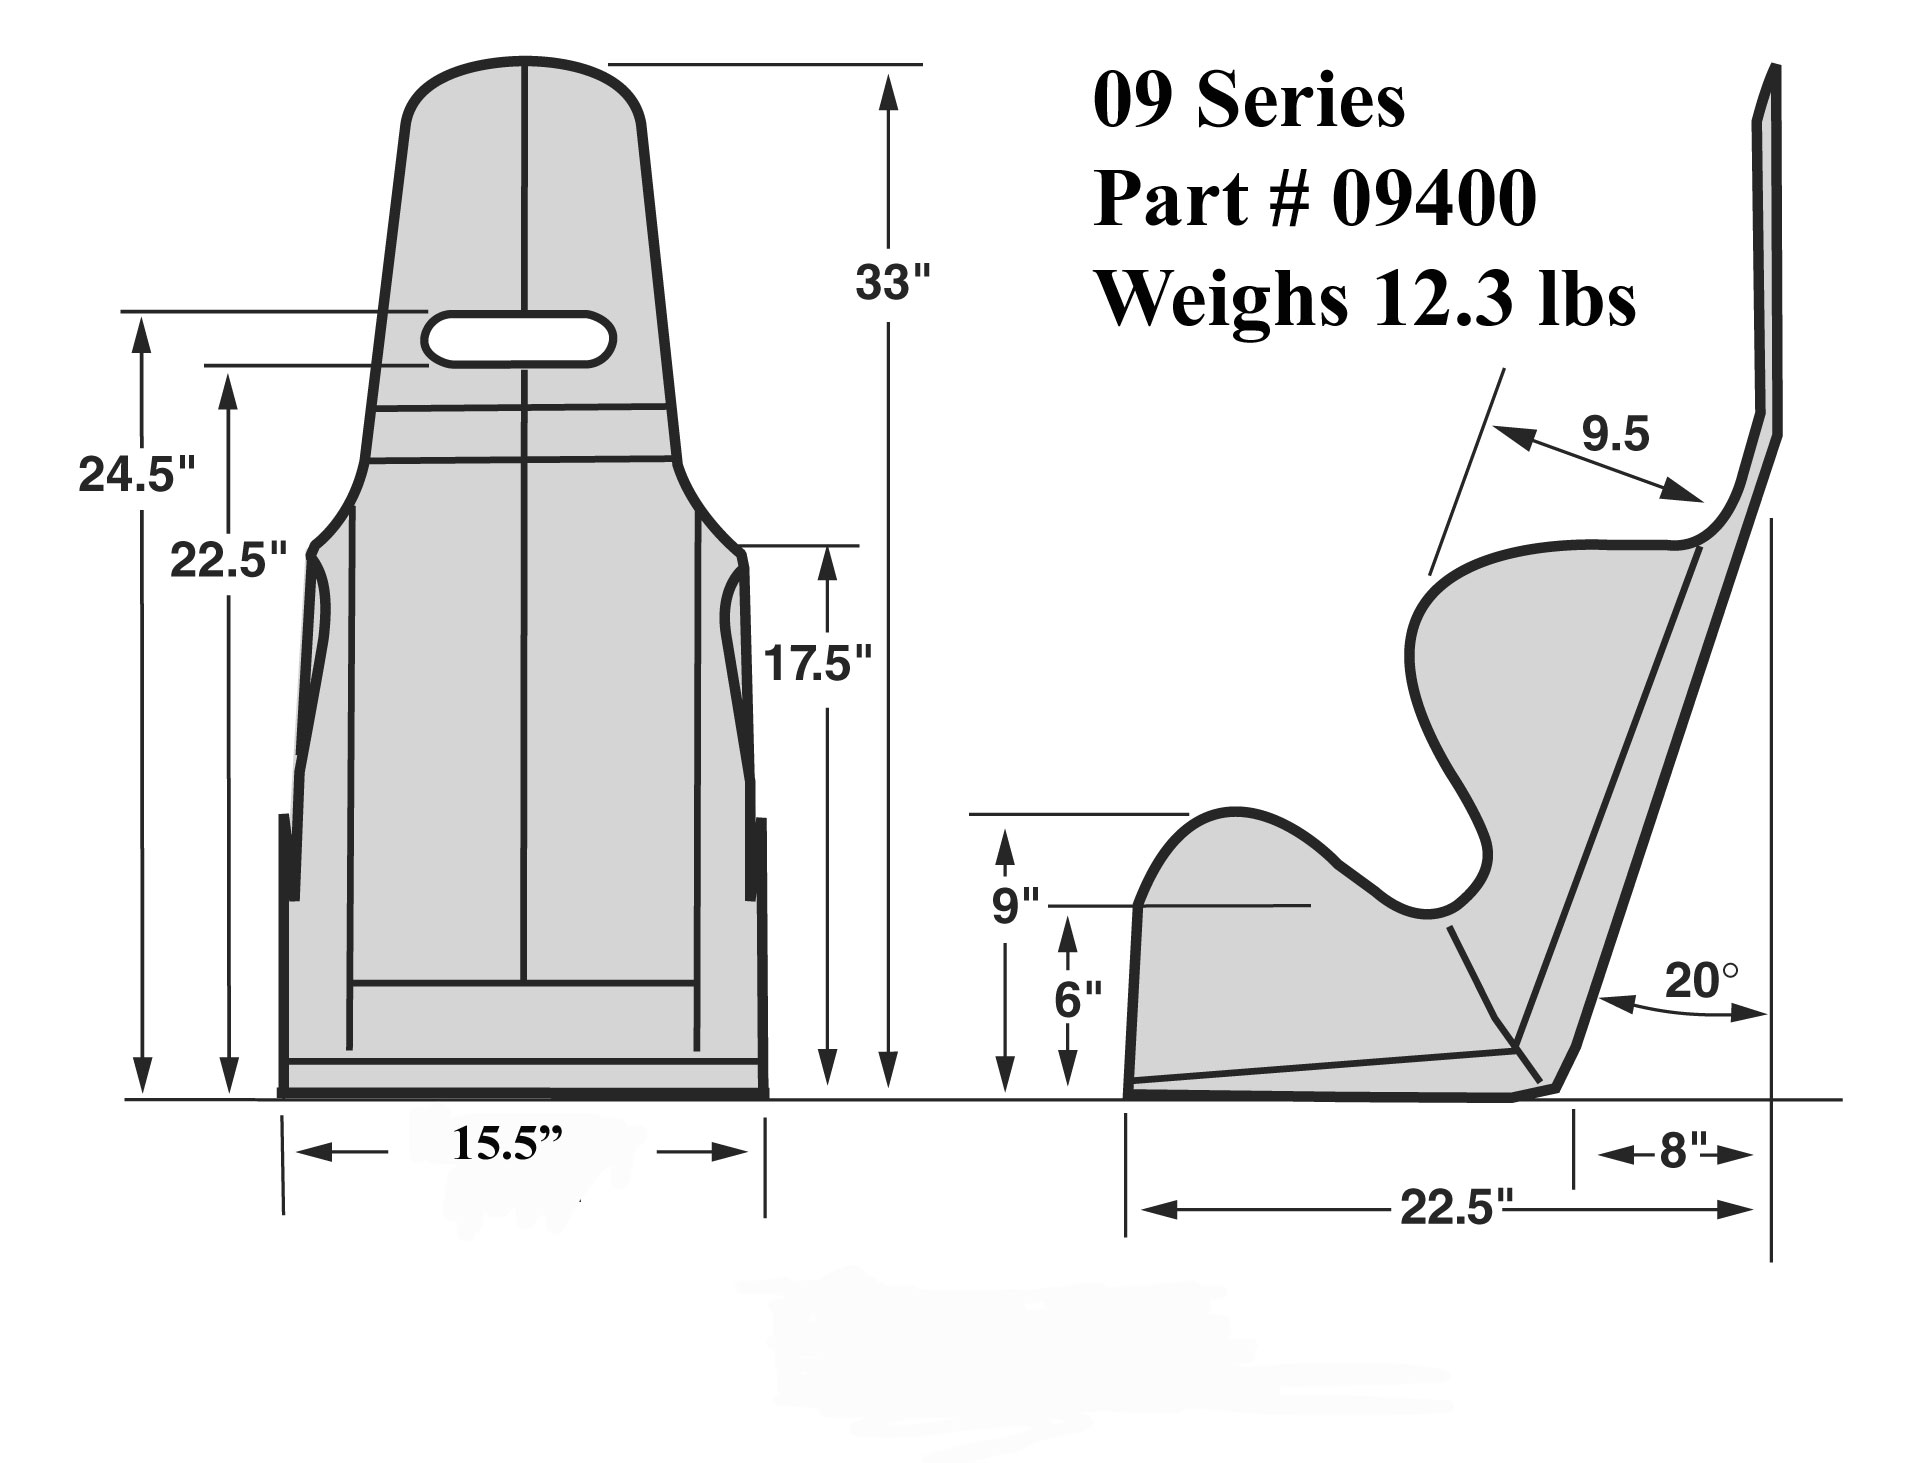 hight resolution of 910 70070 shop drawing dimensions jpg